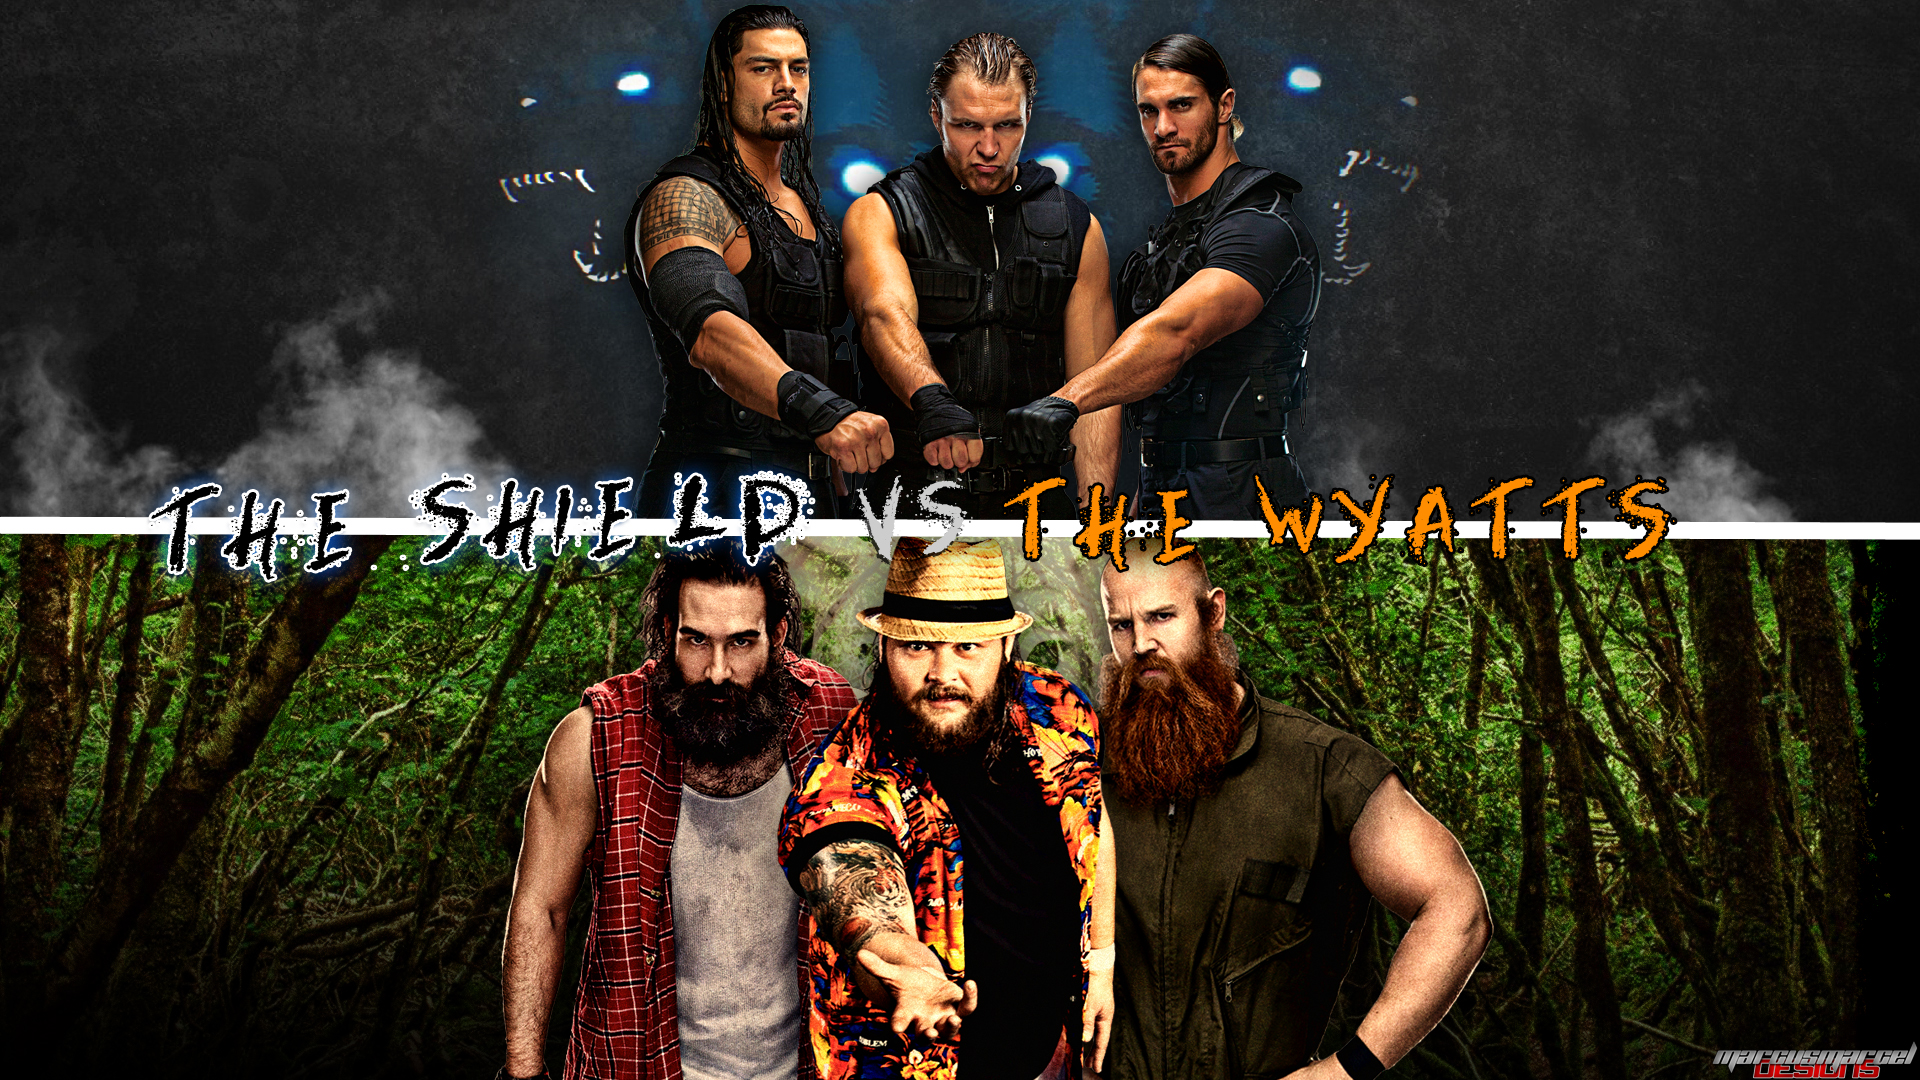 wwe ec   the shield vs  the wyatts wallpaper by marcusmarcel d77pcrl 1920x1080